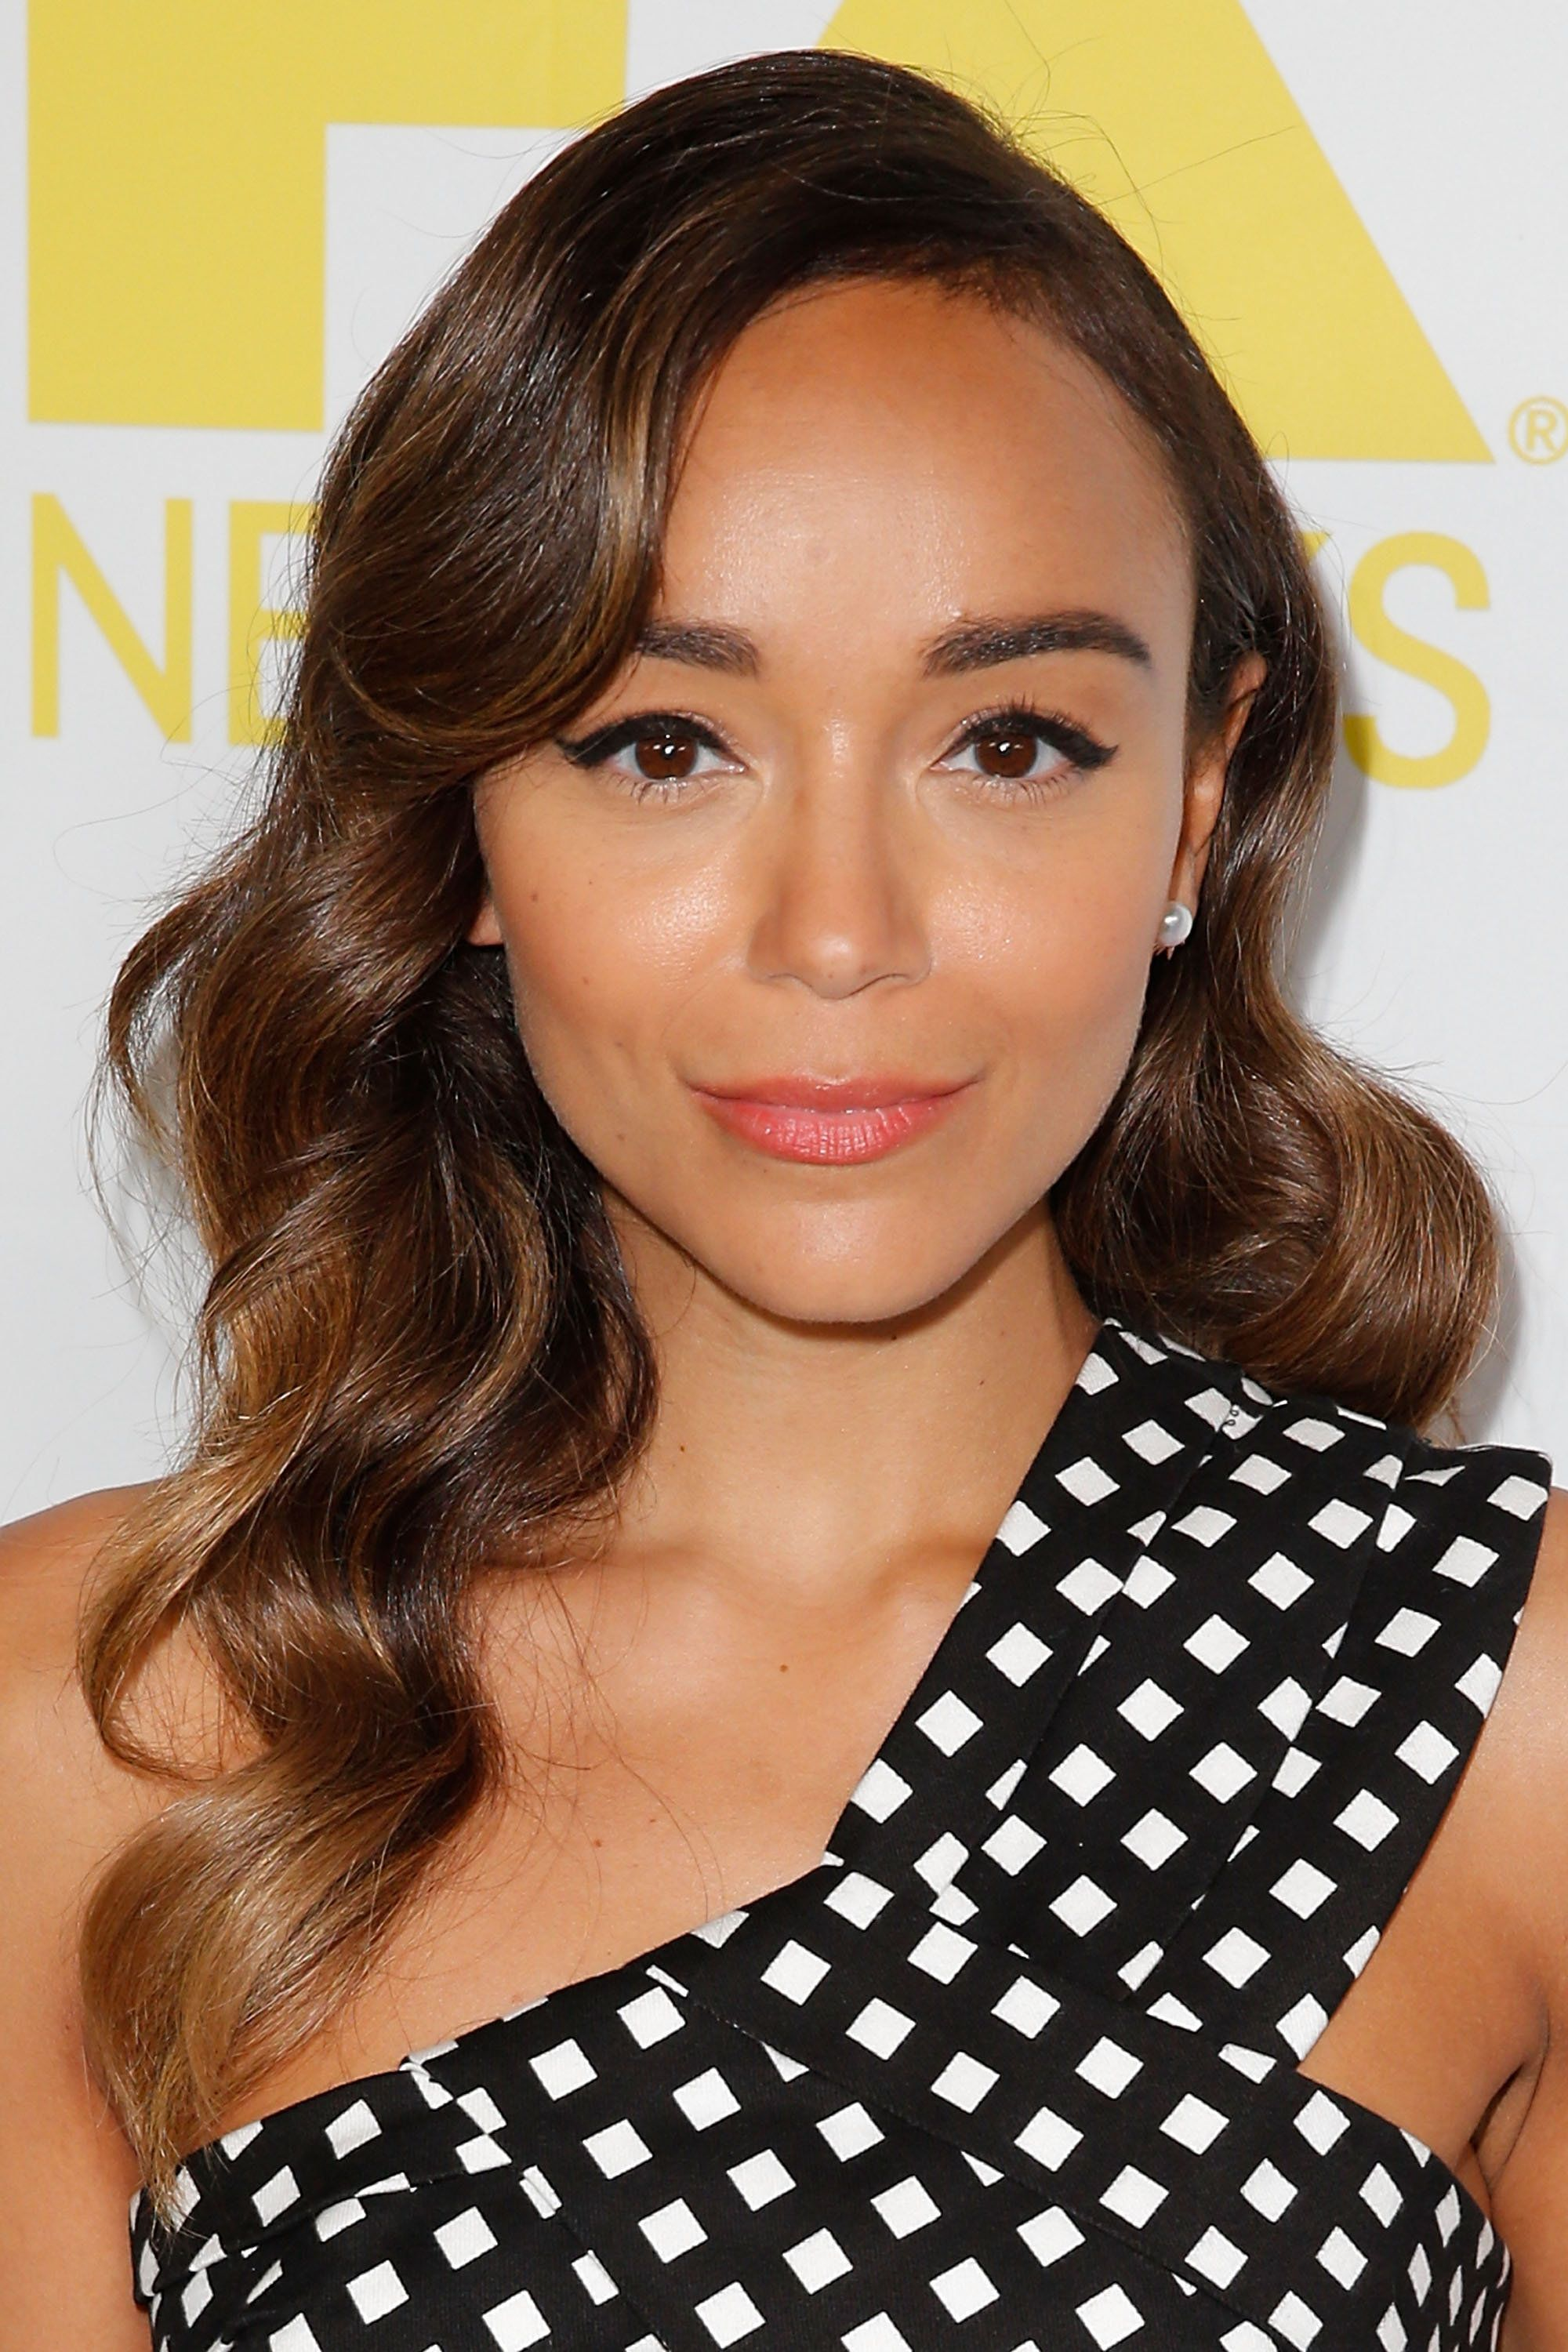 SAN DIEGO, CA - JULY 10:  Ashley Madekwe attends the Comic-Con International 2015 - 20th Century Fox Party at Andaz Hotel on July 10, 2015 in San Diego, California.  (Photo by Joe Scarnici/FilmMagic)